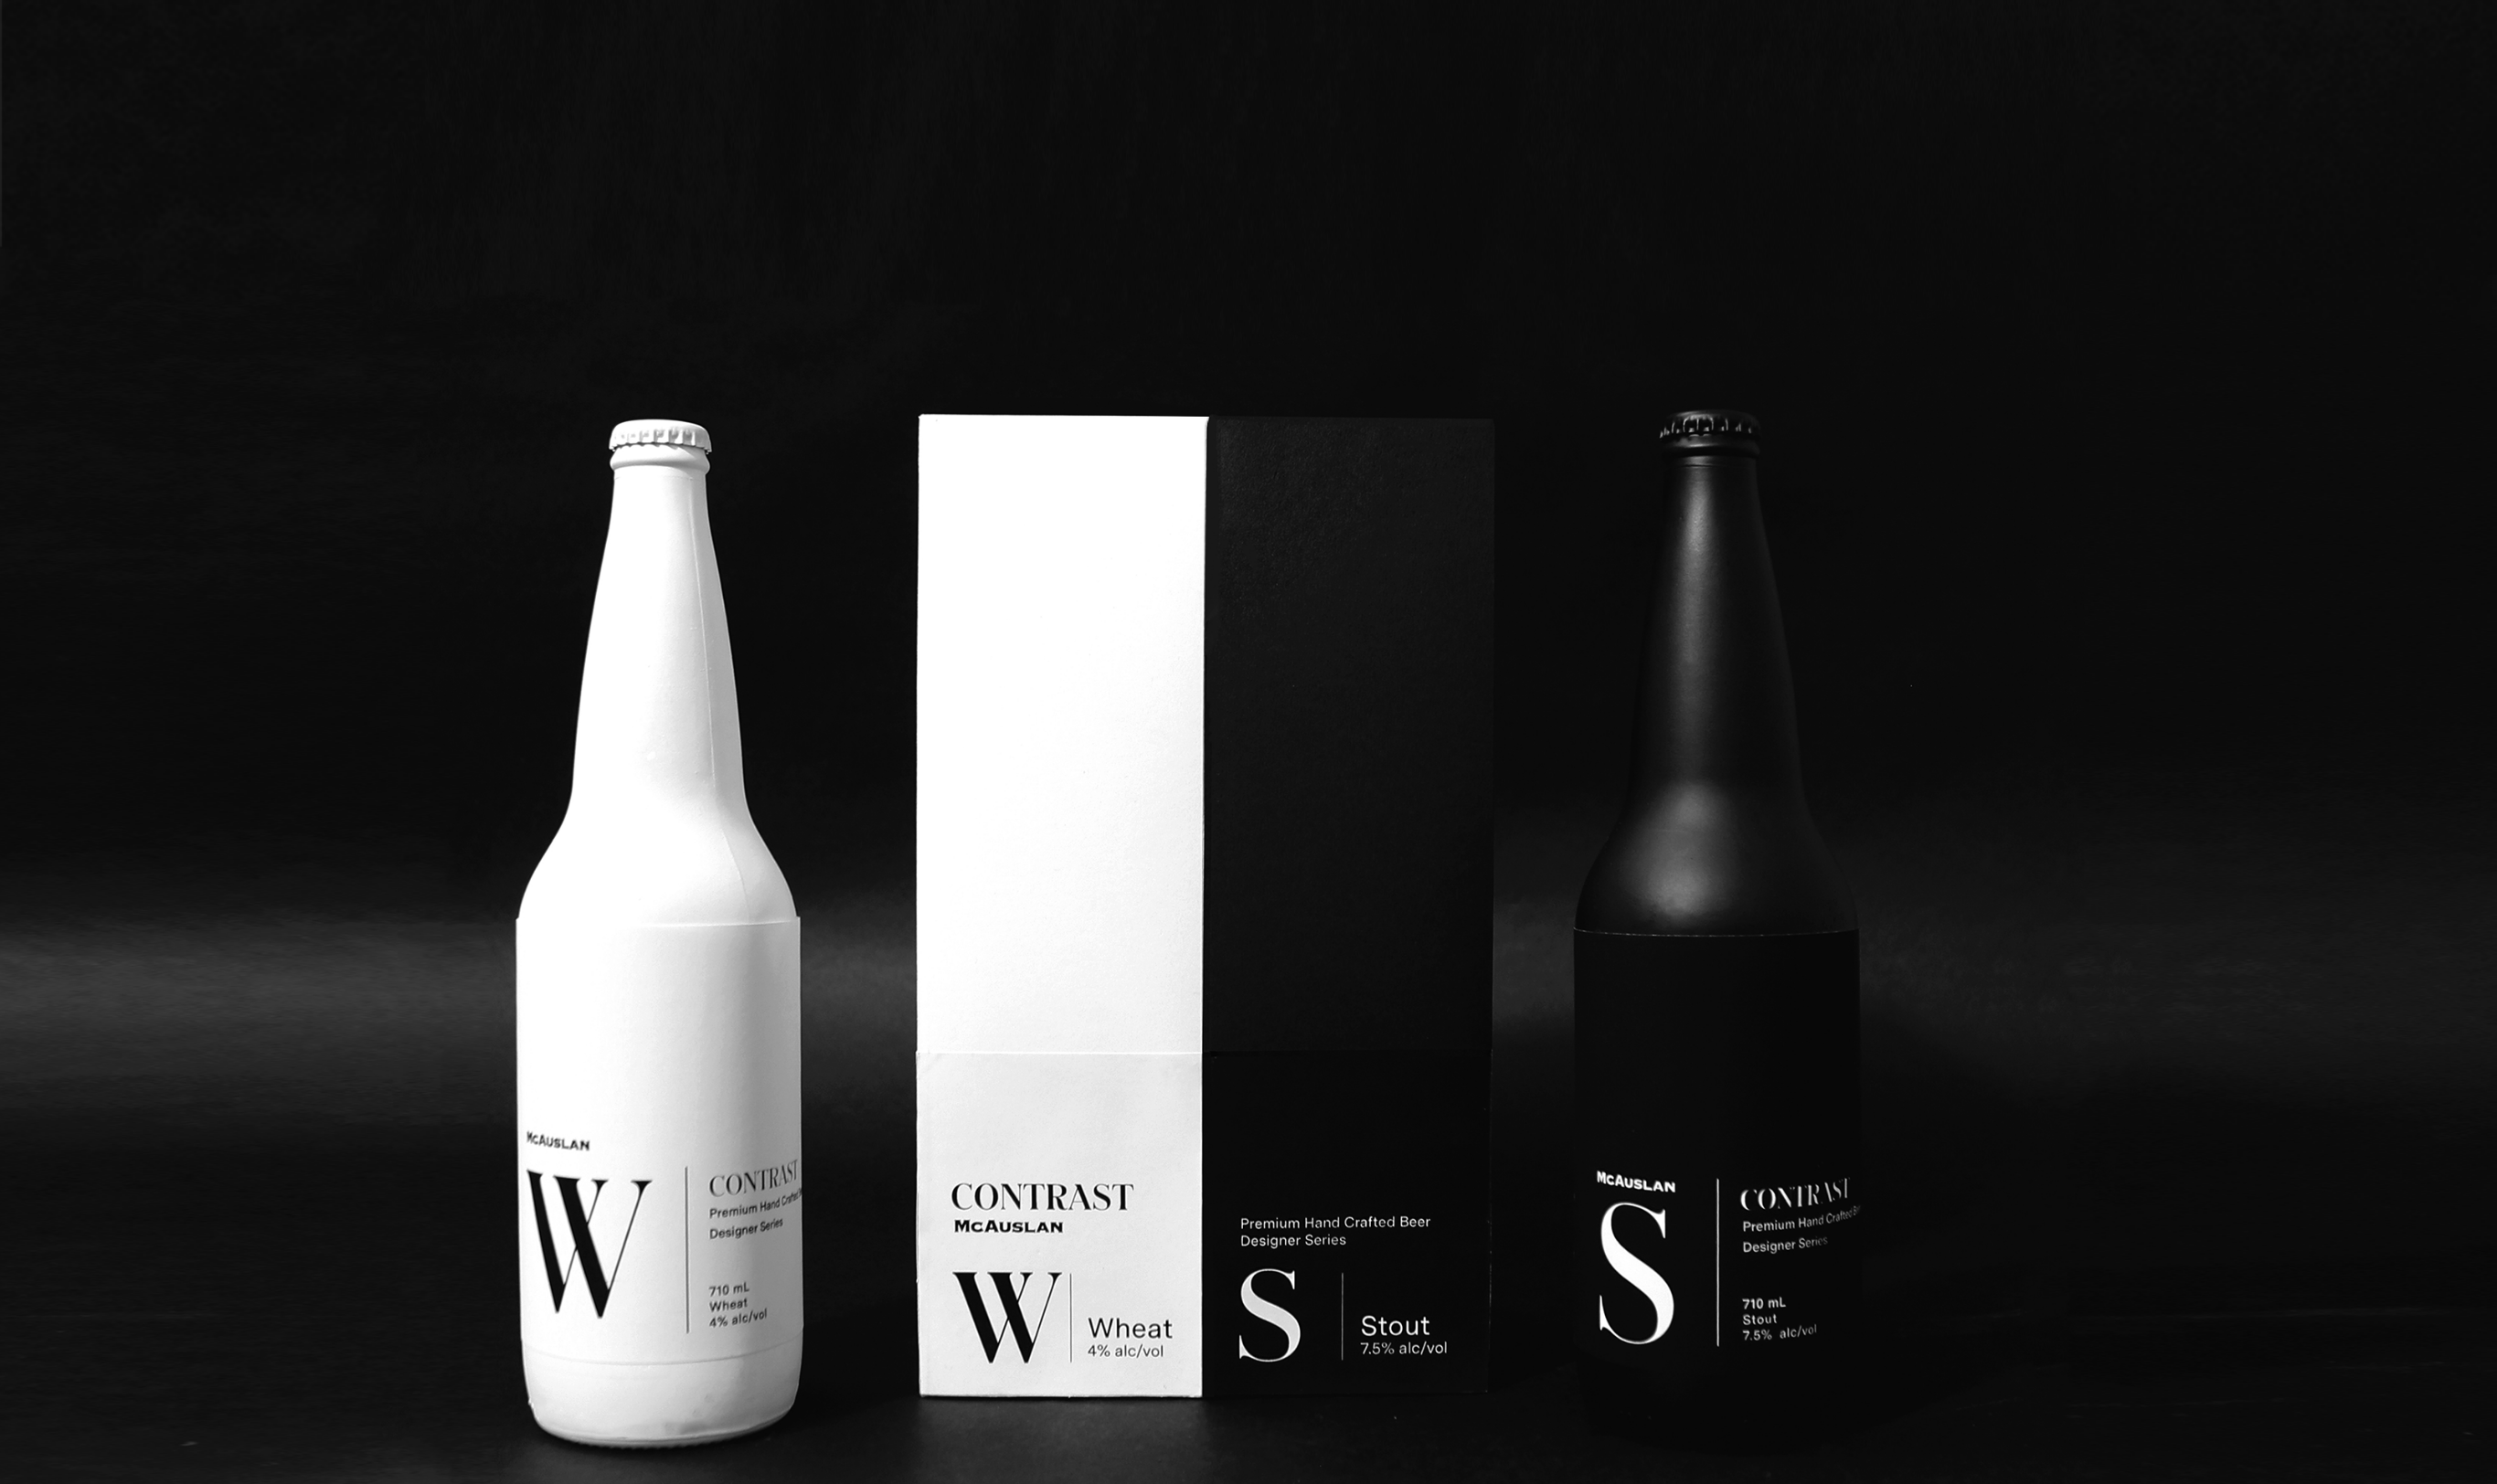 Contrast: Packaging and the bottles next to the box.